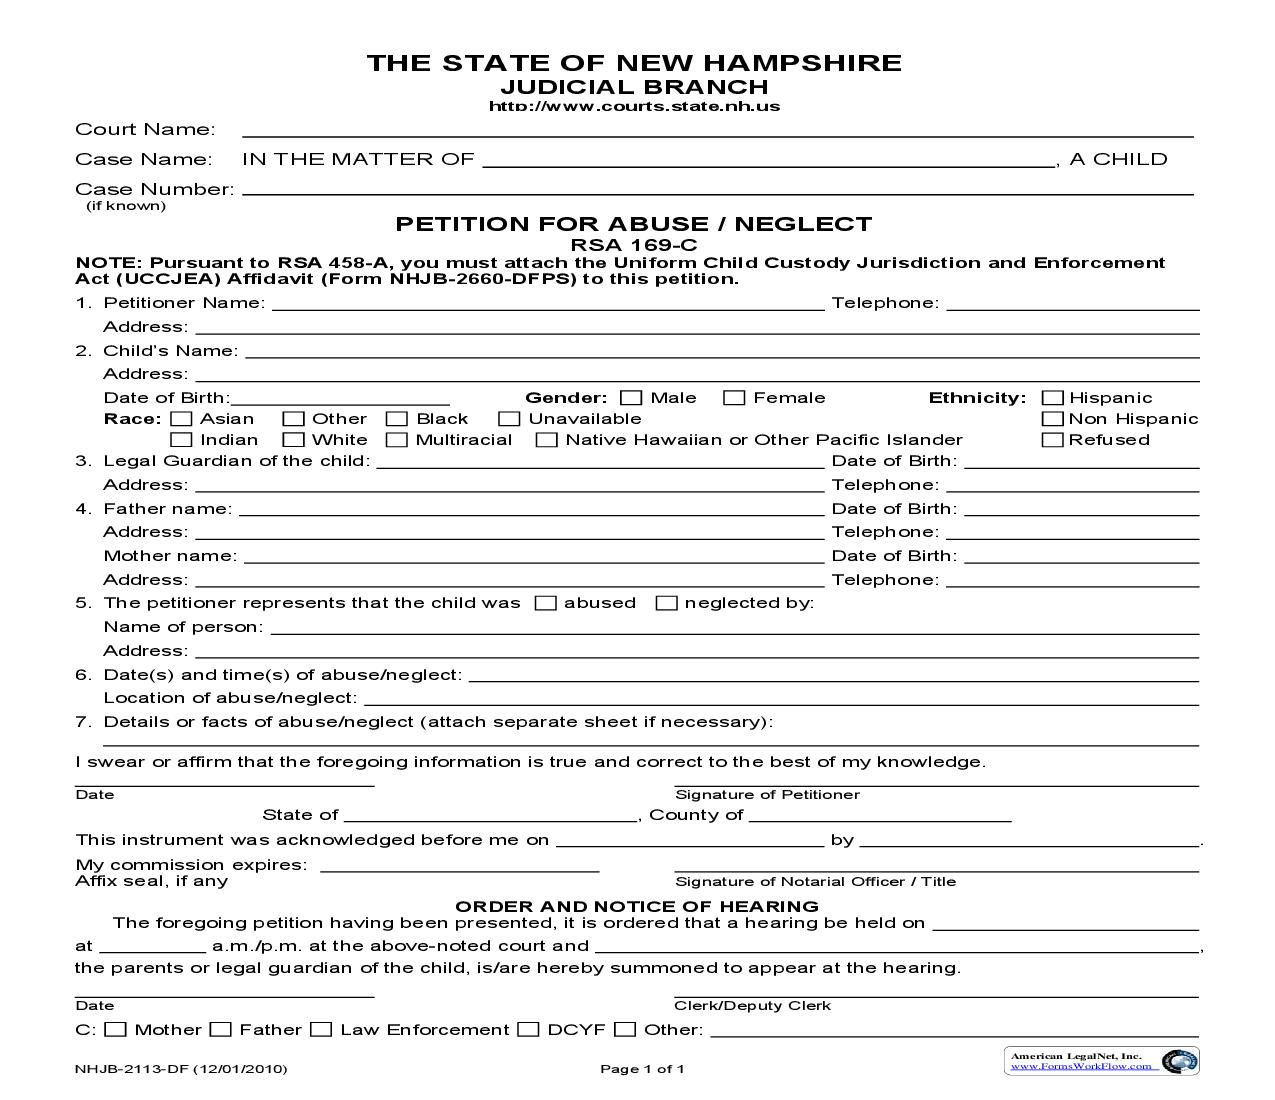 Petition For Abuse Or Neglect {NHJB-2113-DF} | Pdf Fpdf Doc Docx | New Hampshire